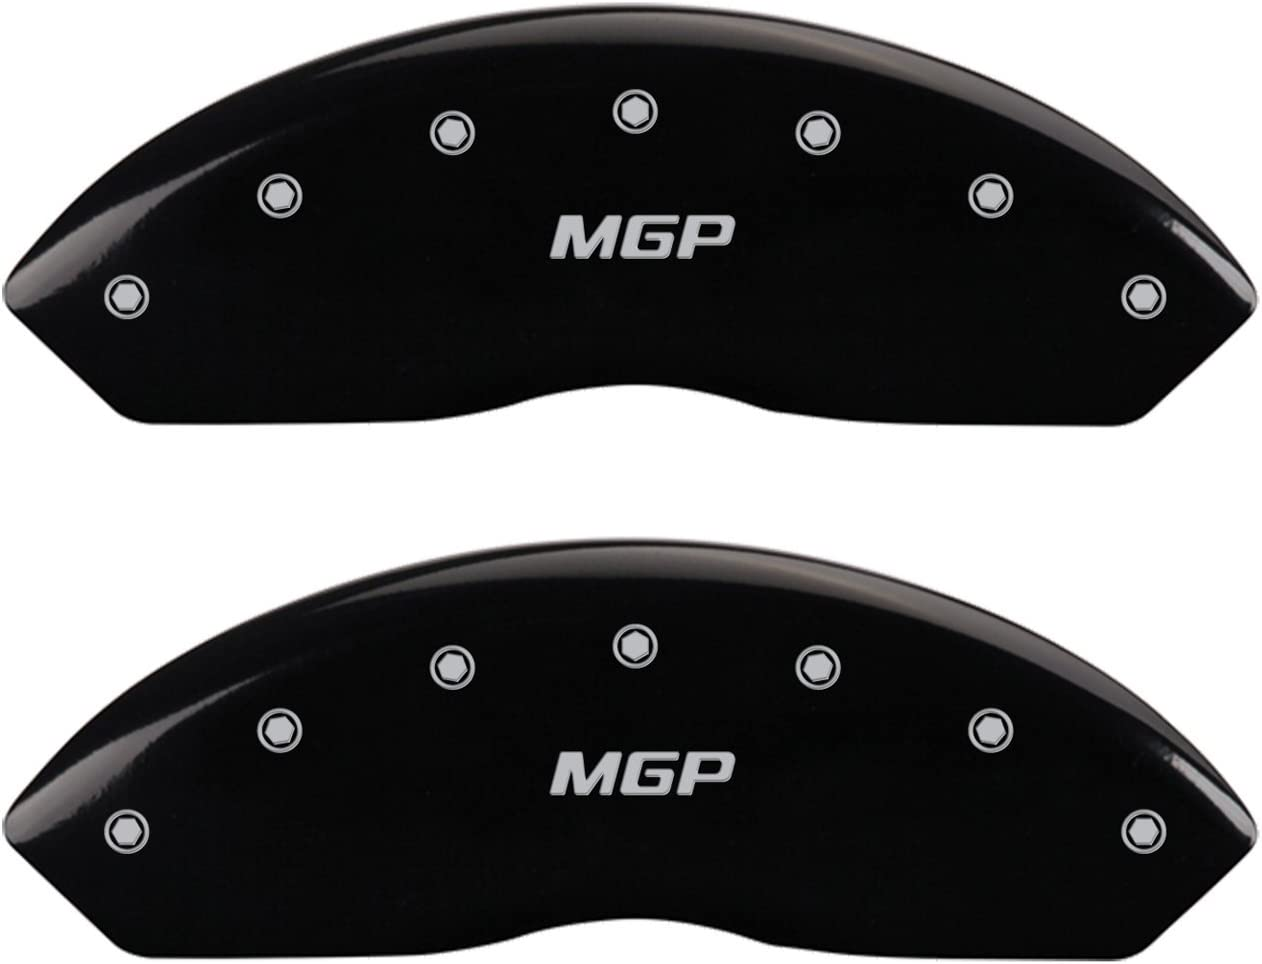 MGP Caliper Covers 41004SMGPBK MGP Engraved Caliper Cover with Black Powder Coat Finish and Silver Characters, Set of 4